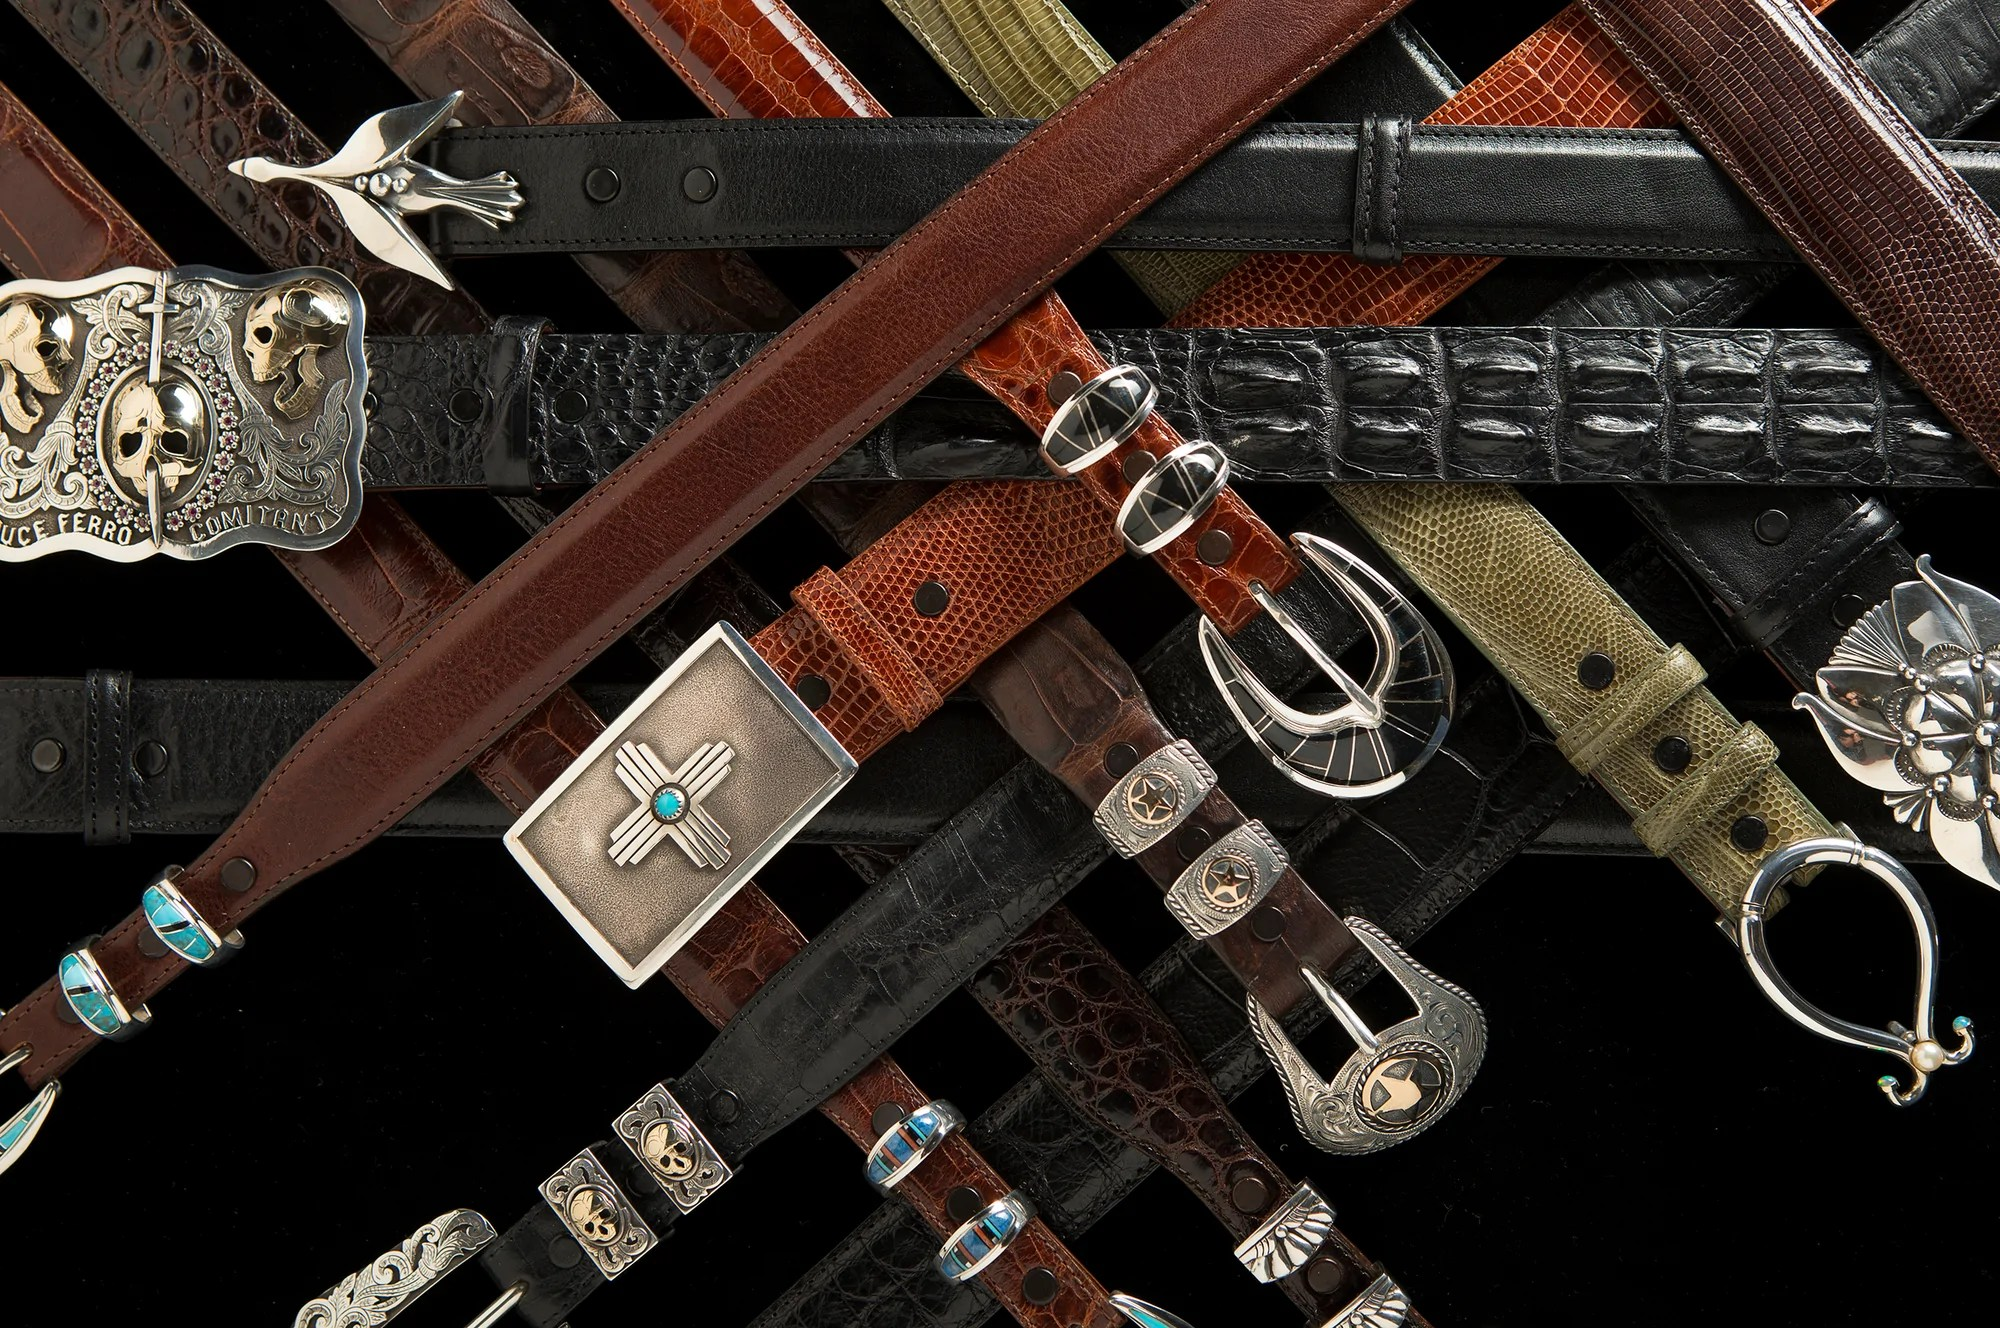 Buckle Tip Sets Tom Taylor Belts Buckles Bags Tom Taylor Custom Leather Belts Buckles And Handbags Leather